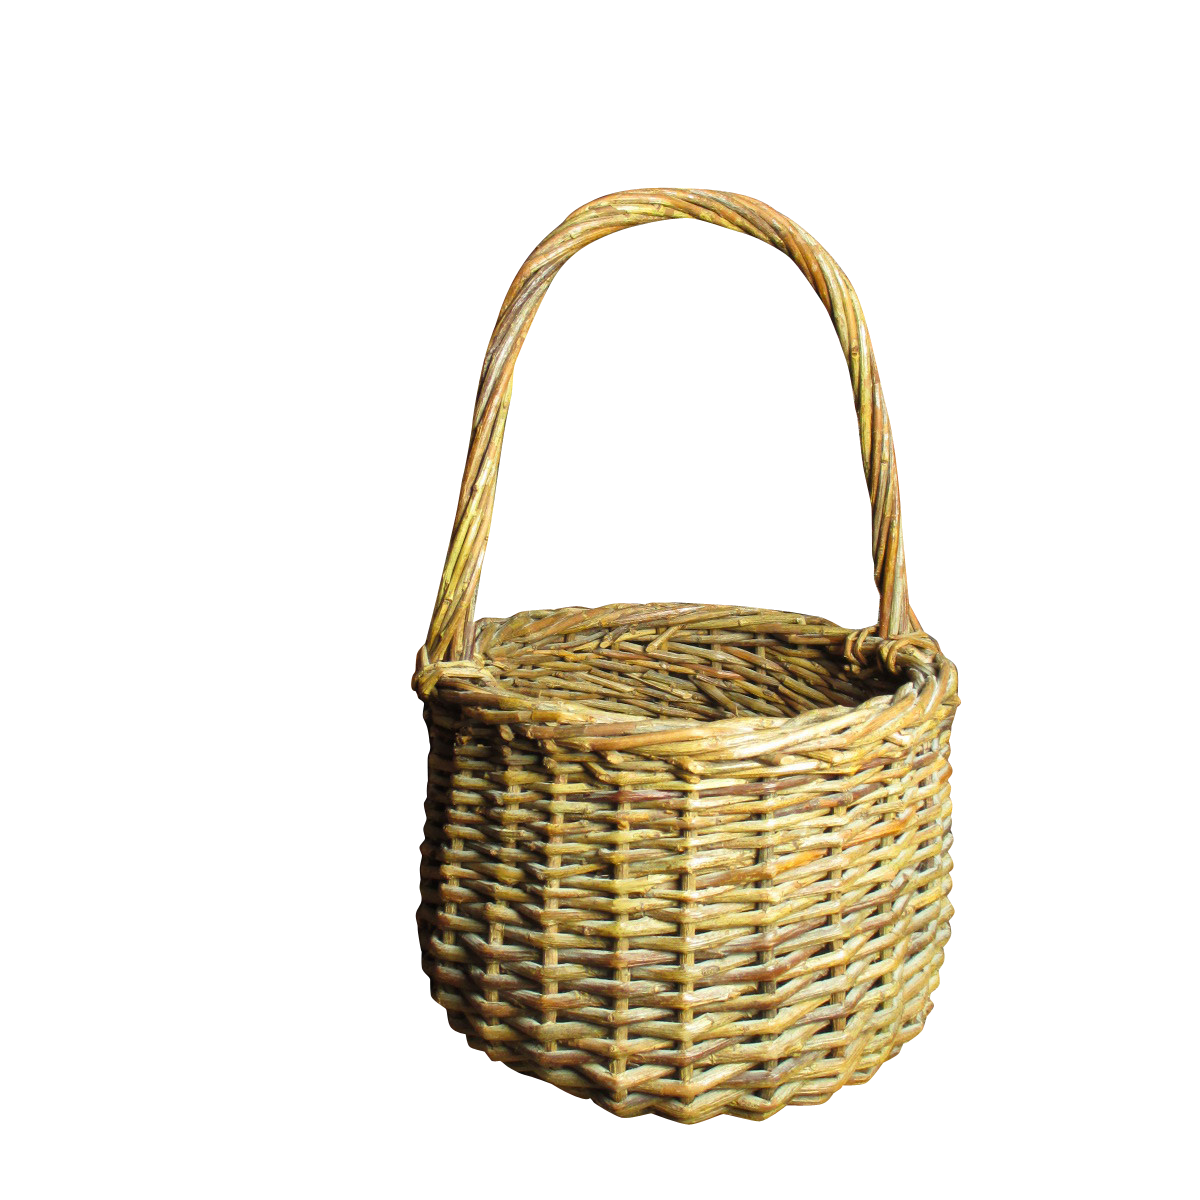 Sweet Little Vintage Wicker Basket with Handle from hannahshouseantiques on Ruby Lane